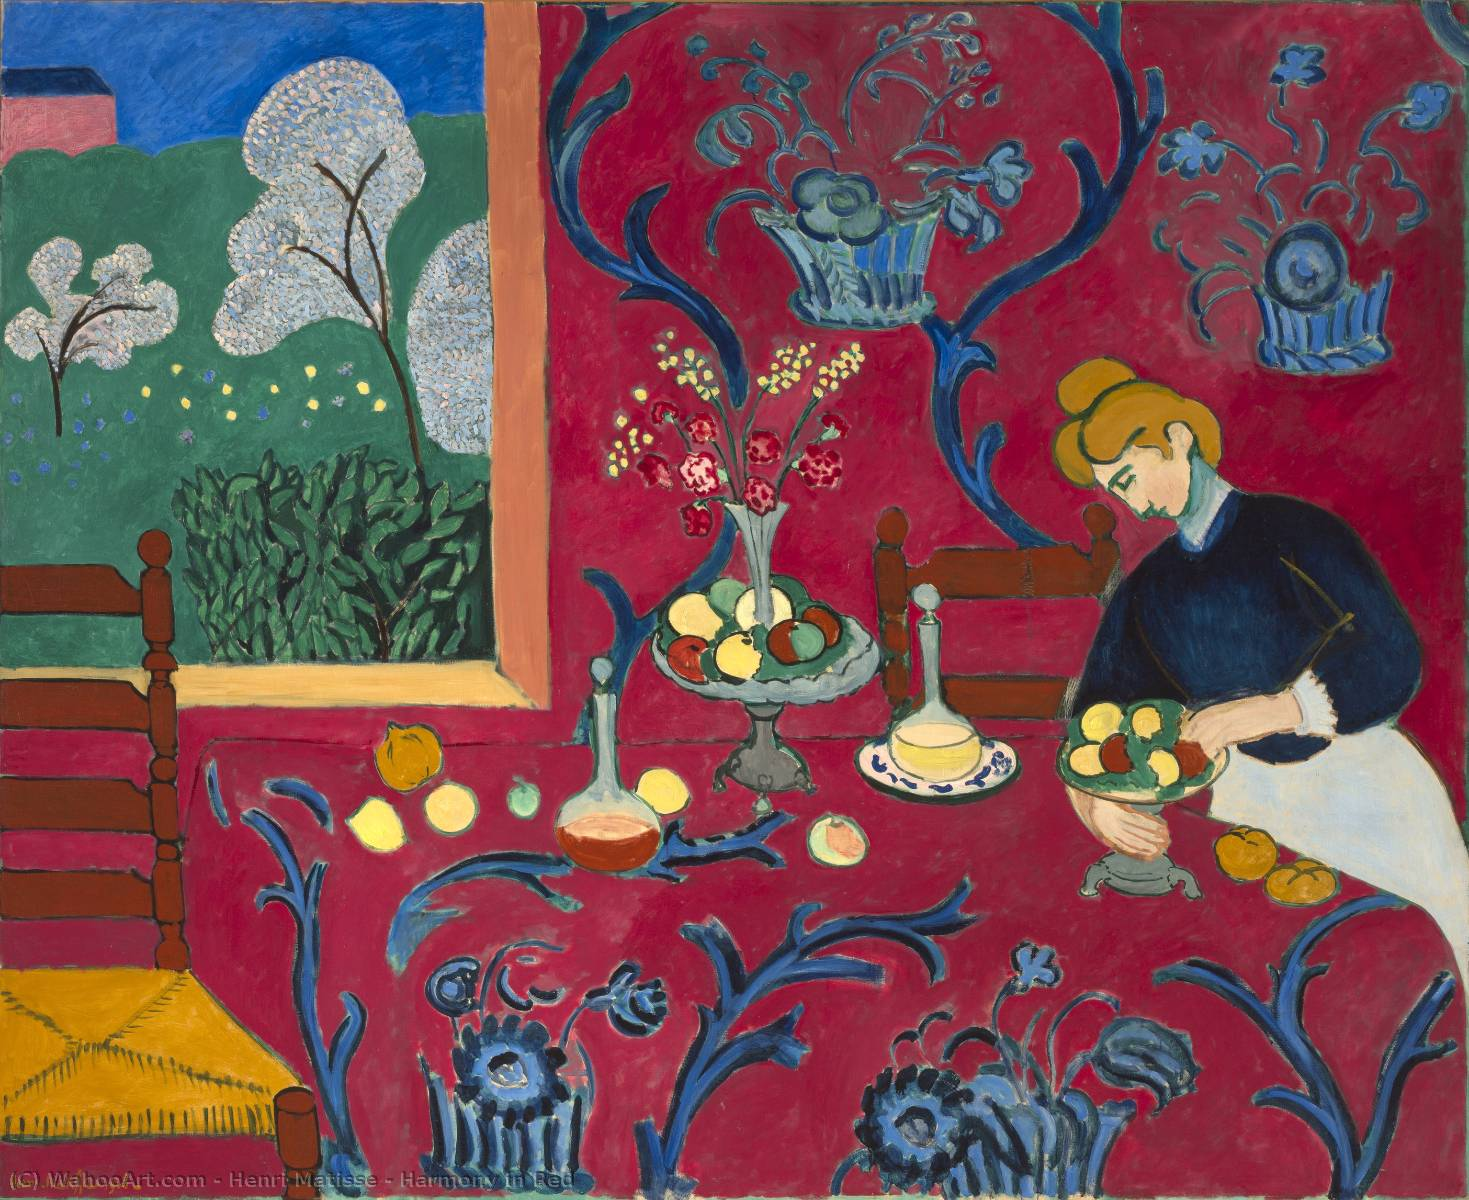 harmonie in rot 1908 von henri matisse 1869 1954 france kunstdrucke auf leinwand. Black Bedroom Furniture Sets. Home Design Ideas